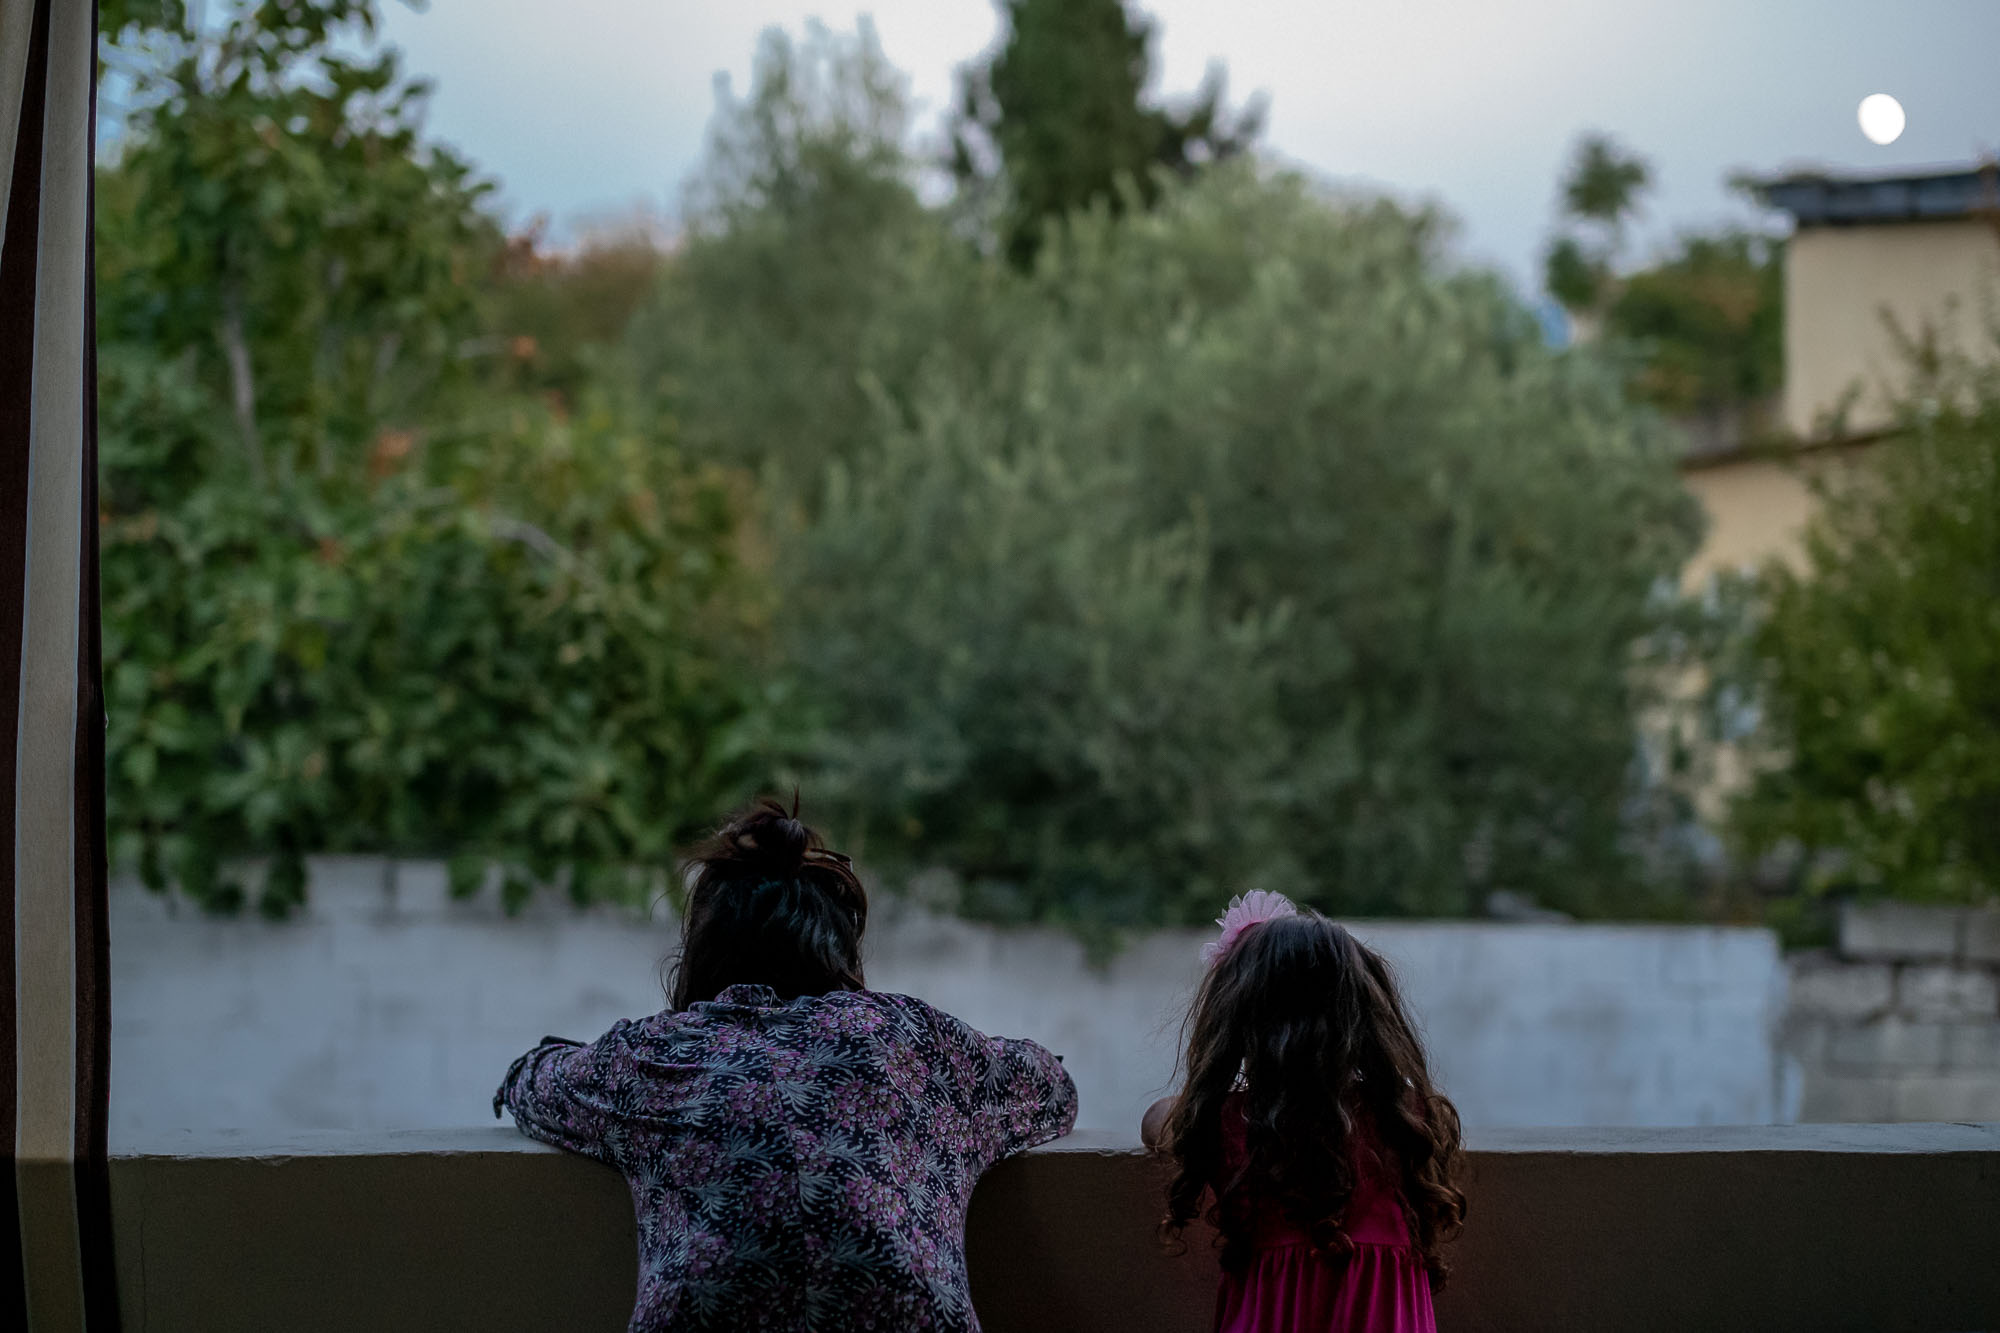 Mother and daughter looking over a wall